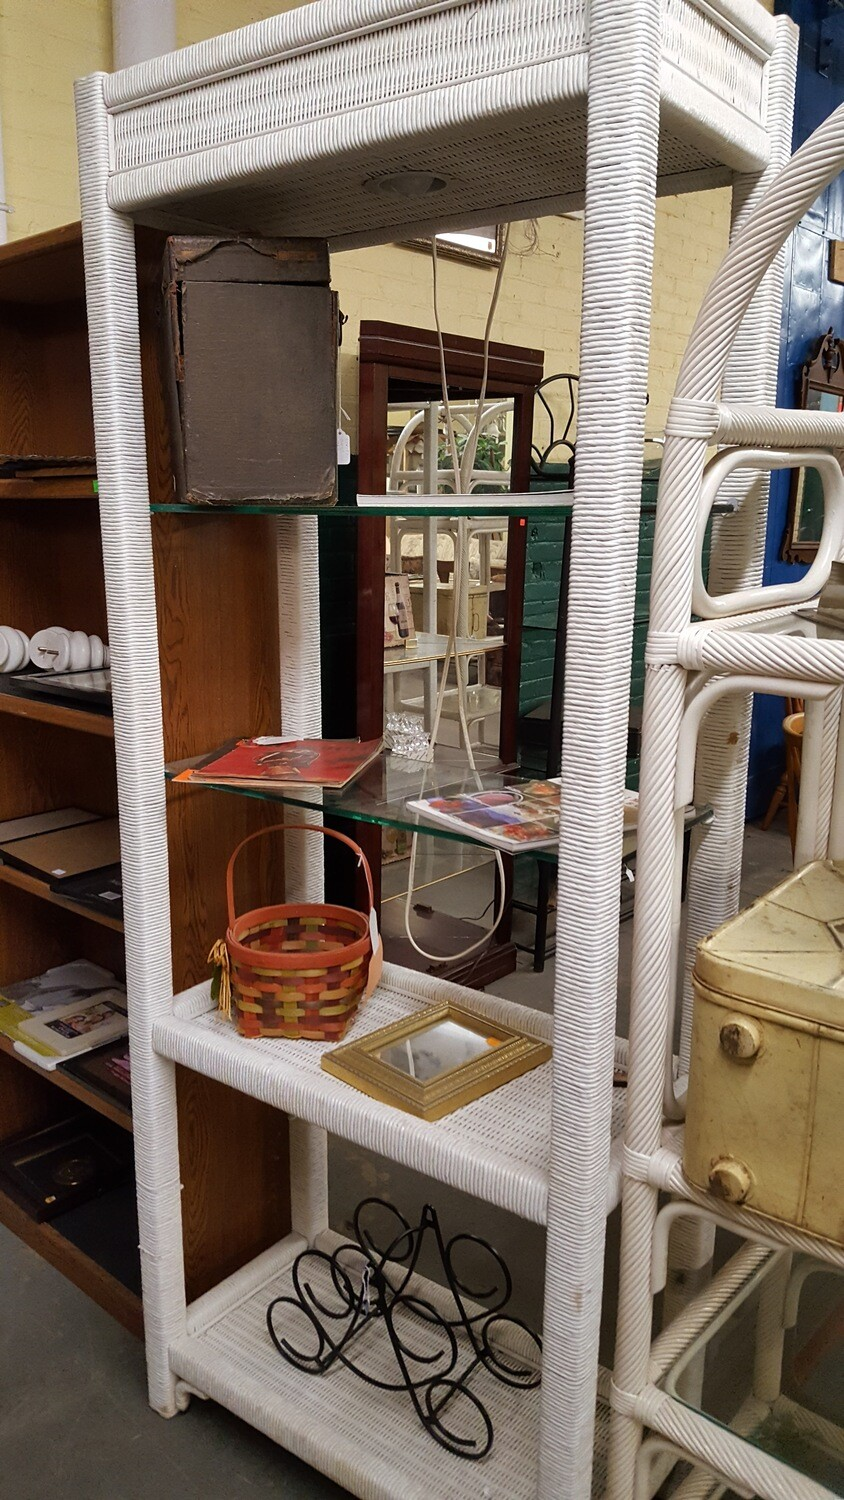 White Wicker Shelving Unit with Light